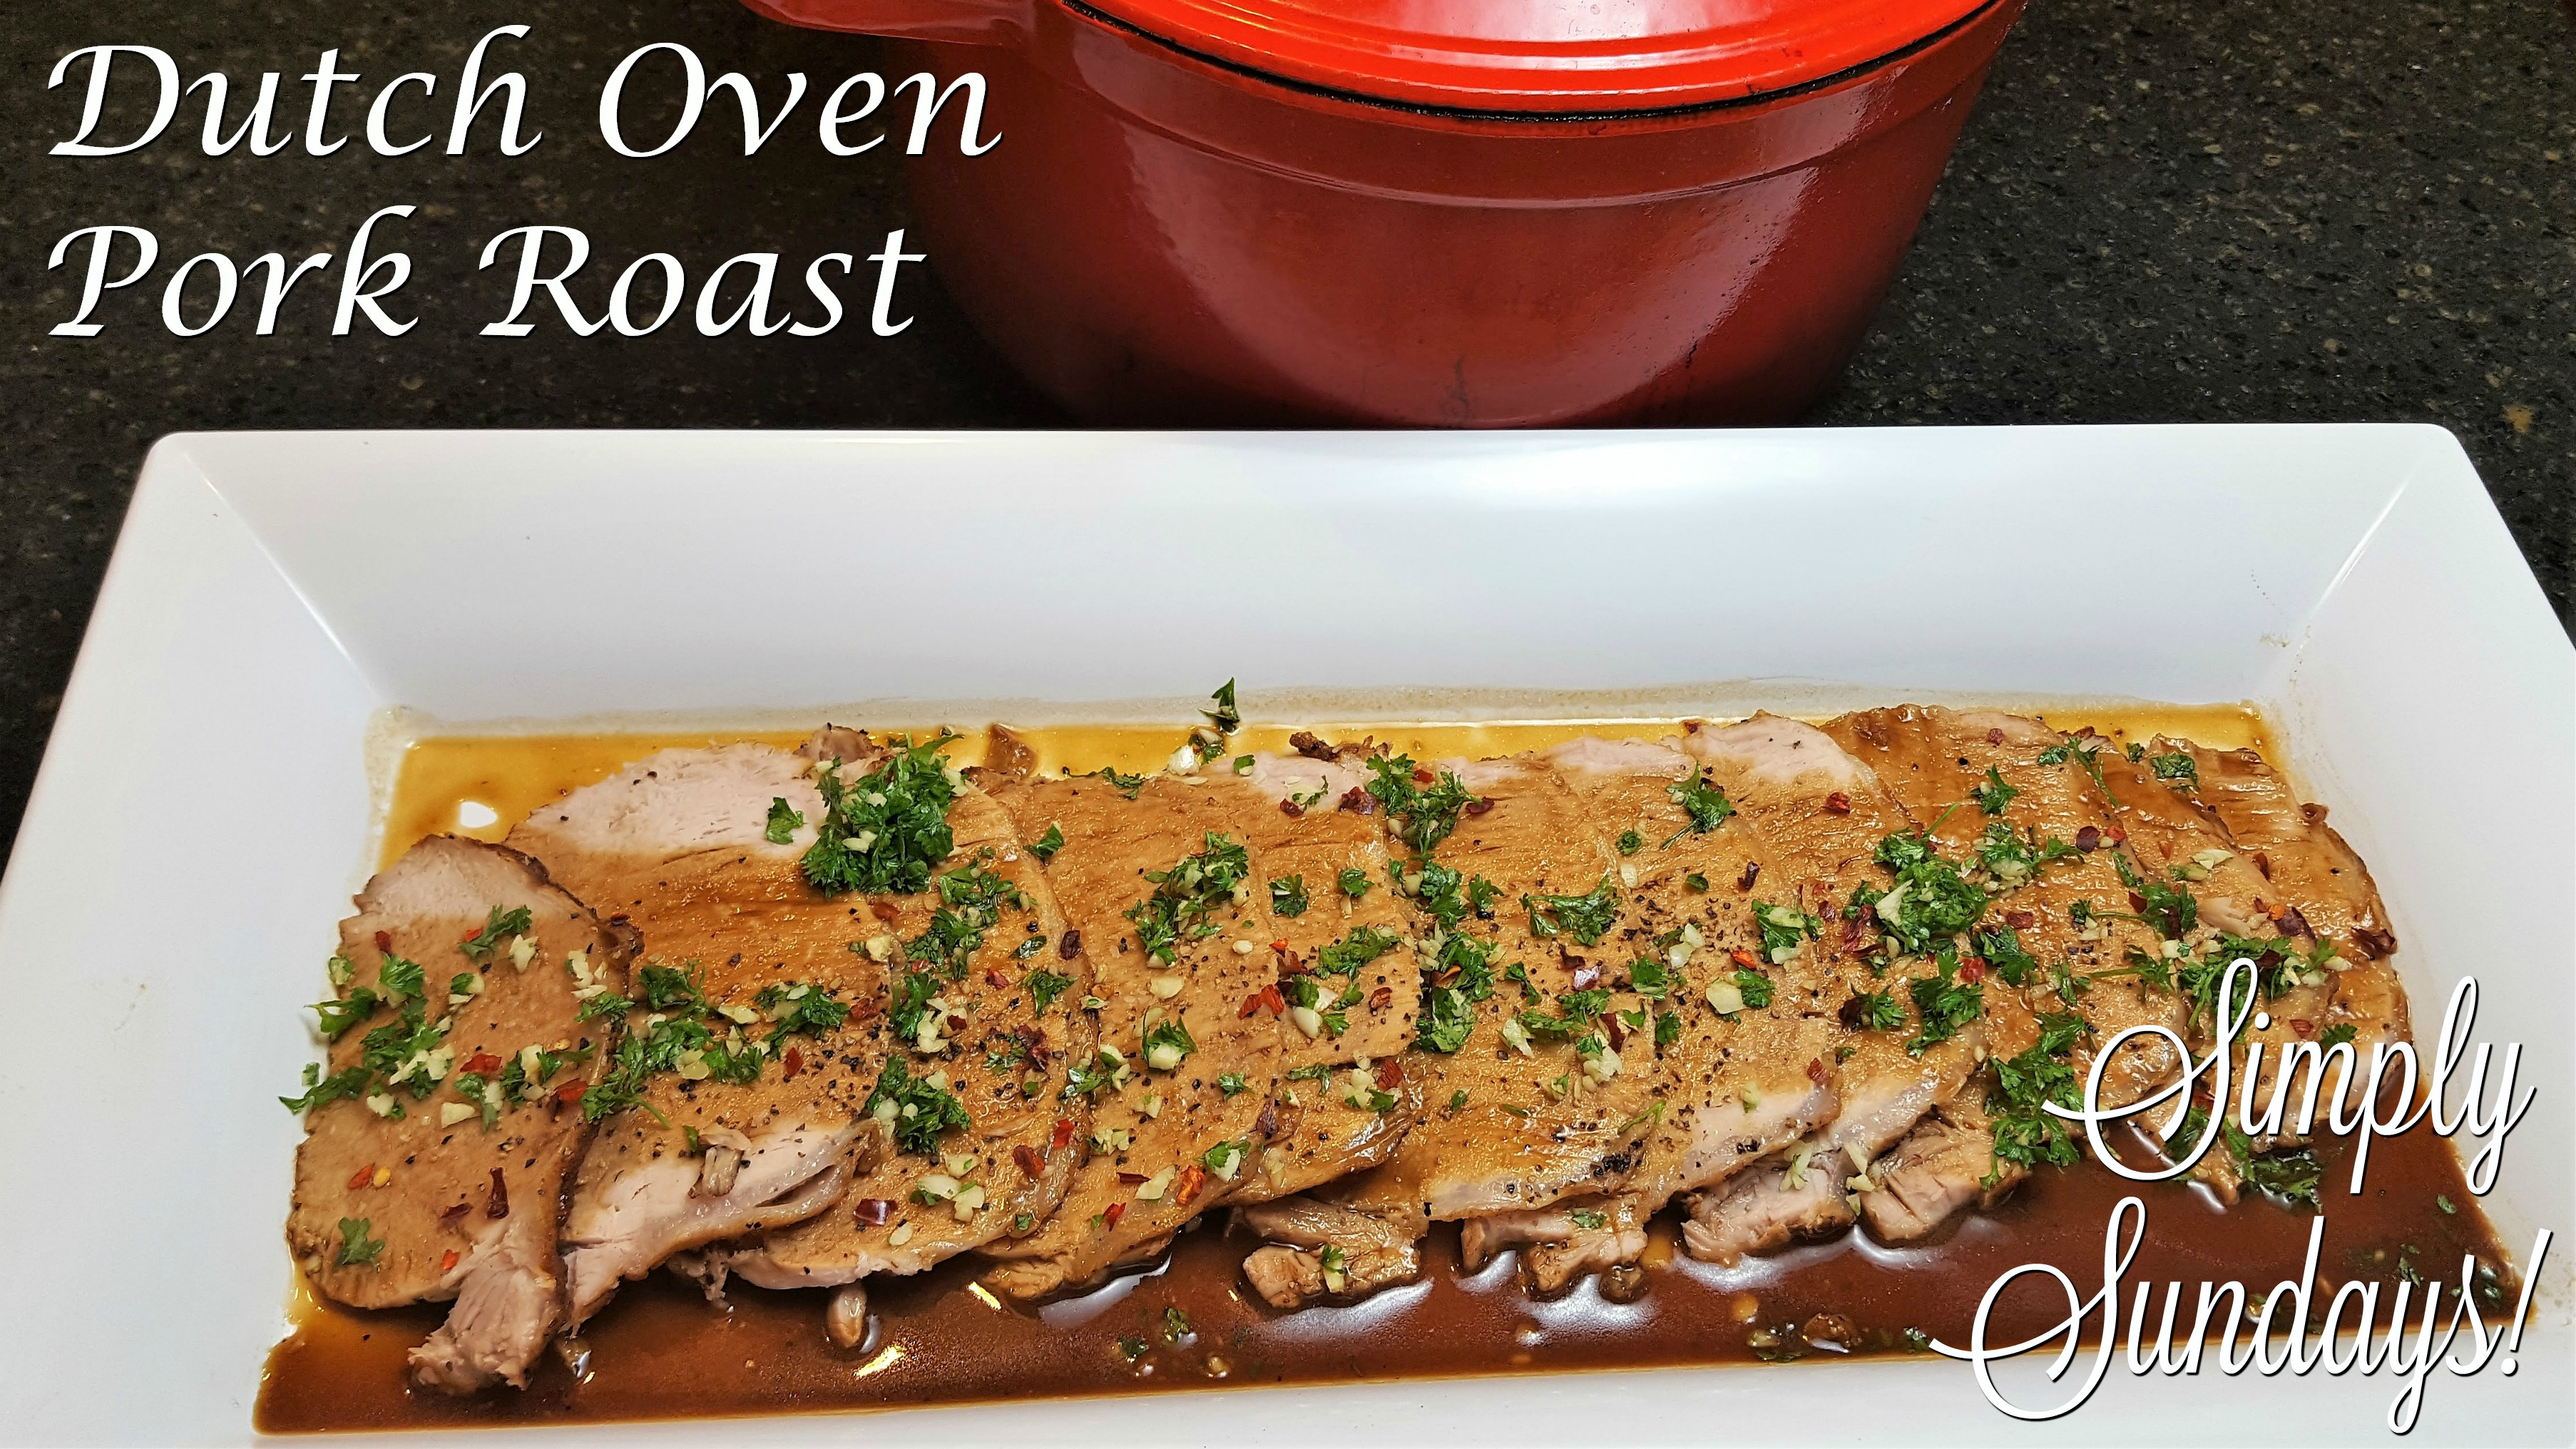 Pork loin in the oven - royal recipe 73